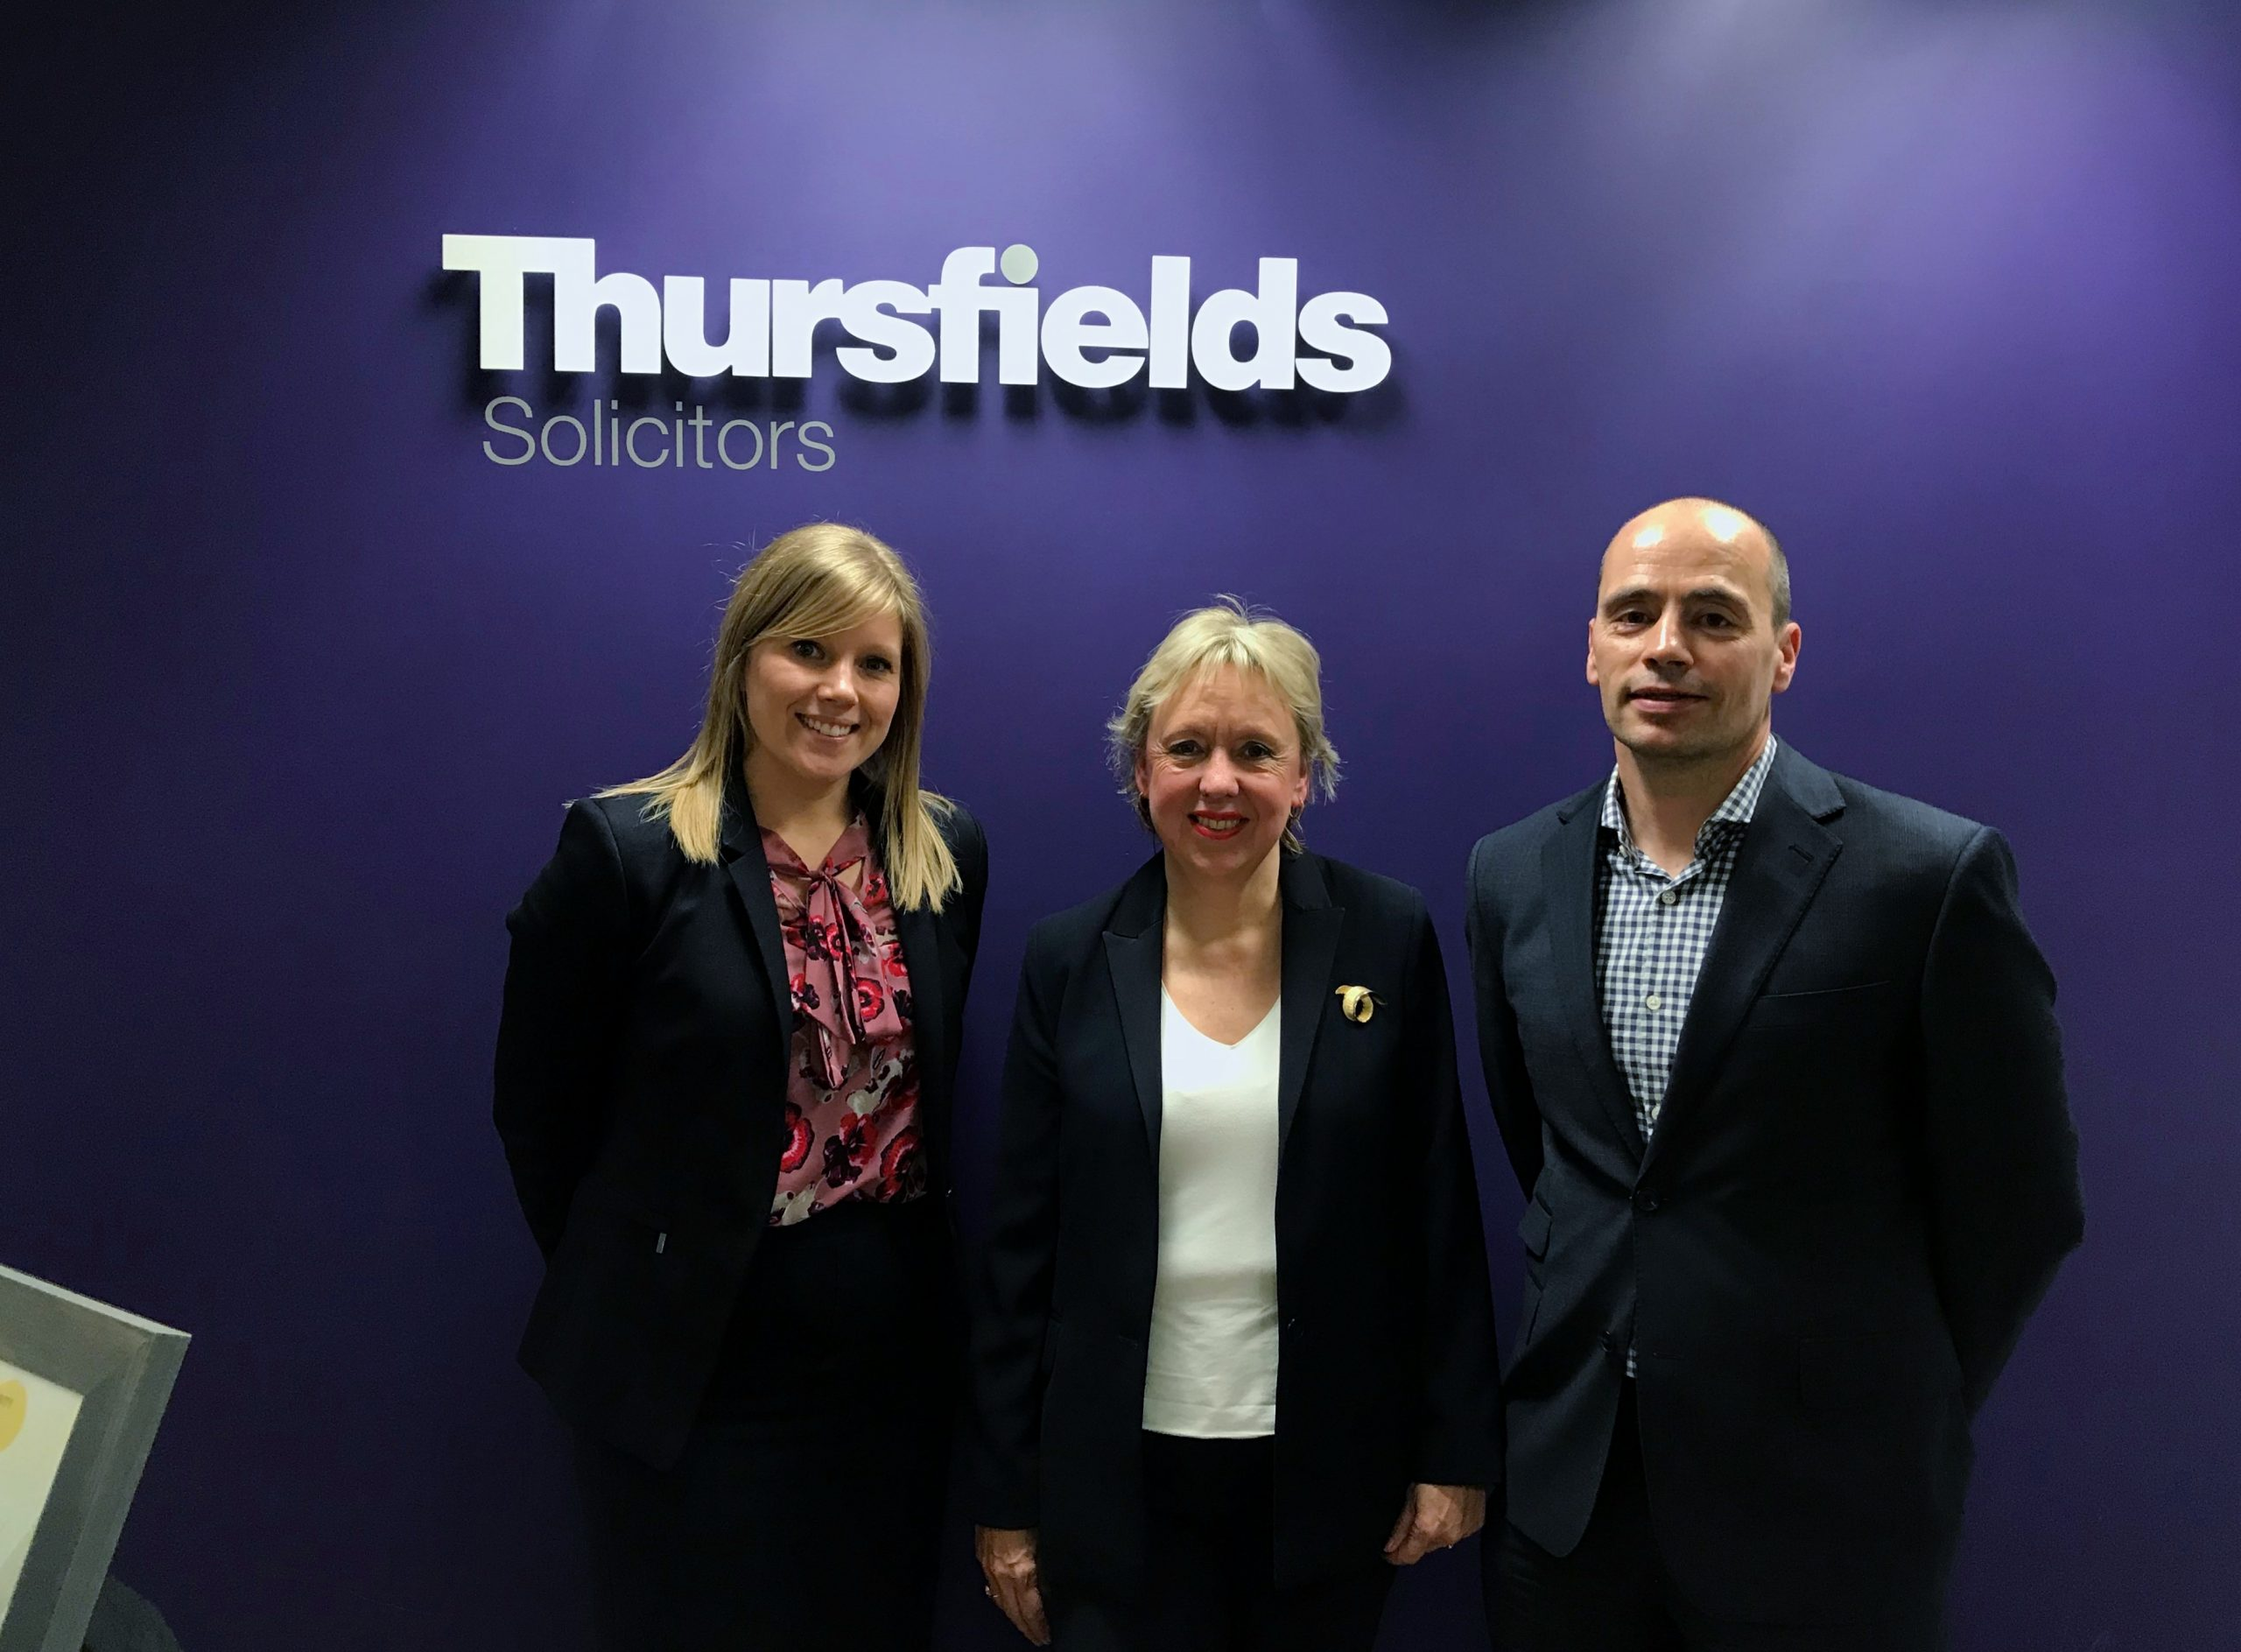 Thursfields Solicitors 3 x solicitors